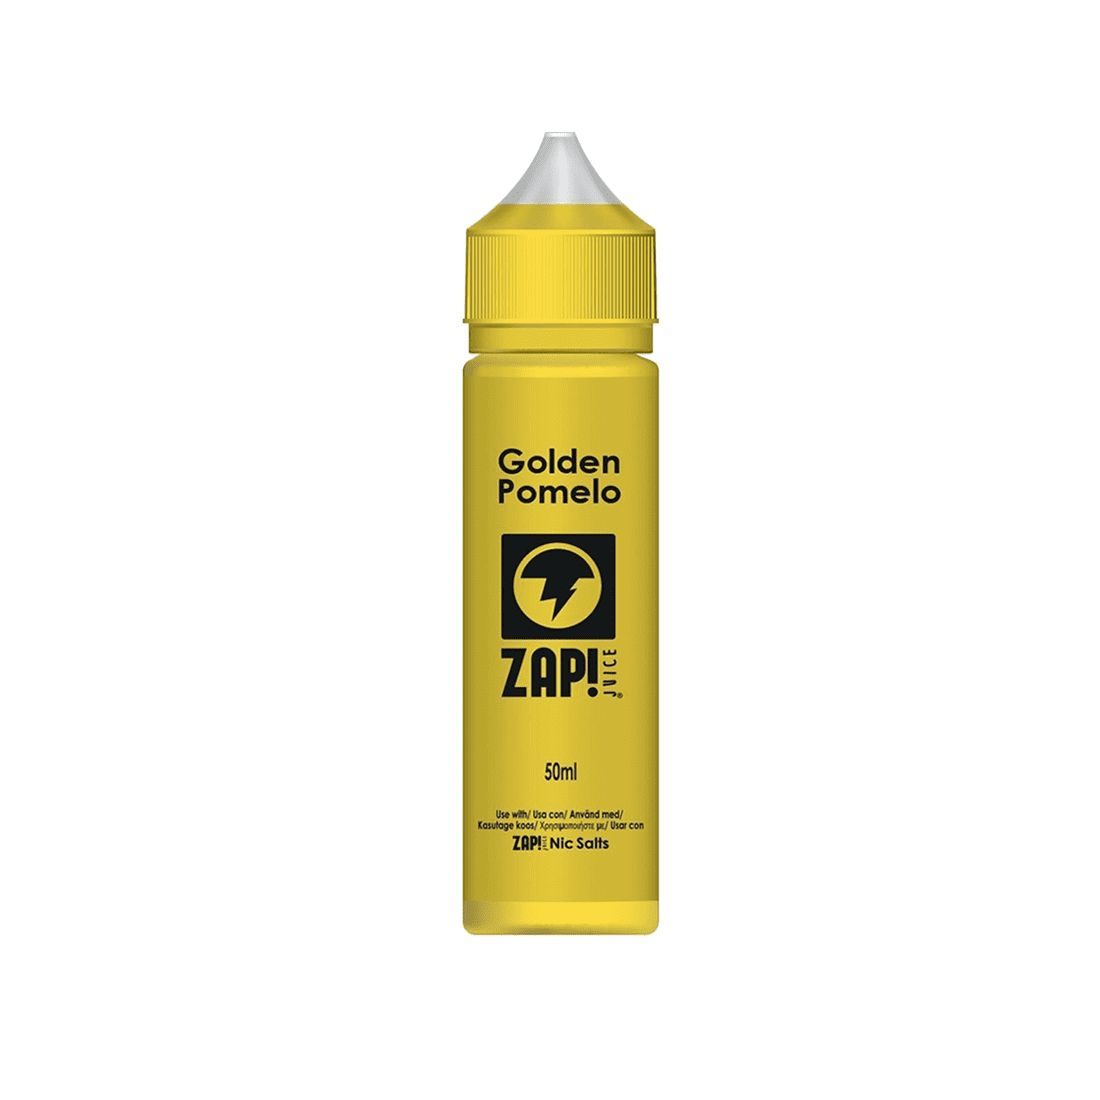 Golden Pomelo 50ml Shortfill by ZAP!